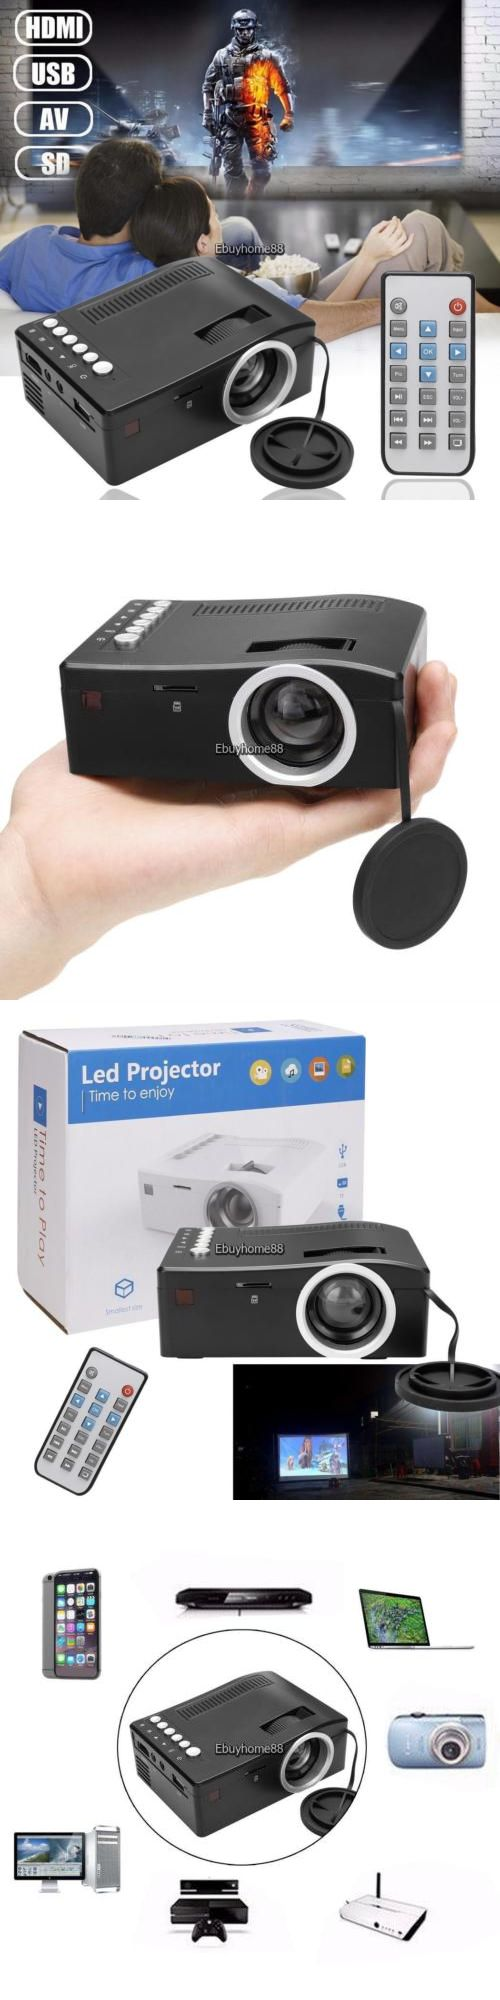 best 25 home theater projectors ideas only on pinterest home